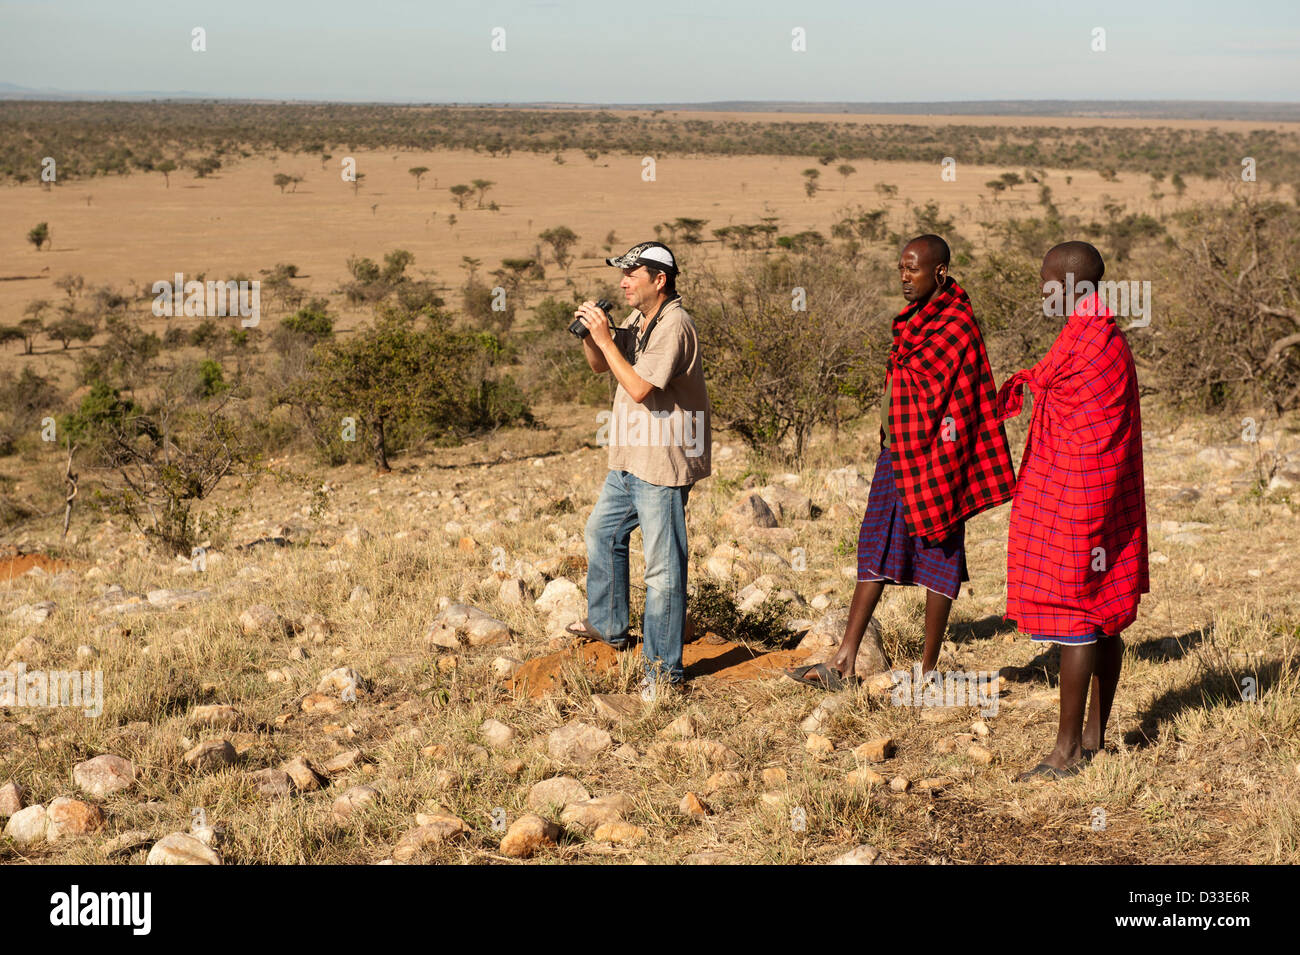 Walking safari with Masai guides, Maasai Mara National Reserve, Kenya - Stock Image